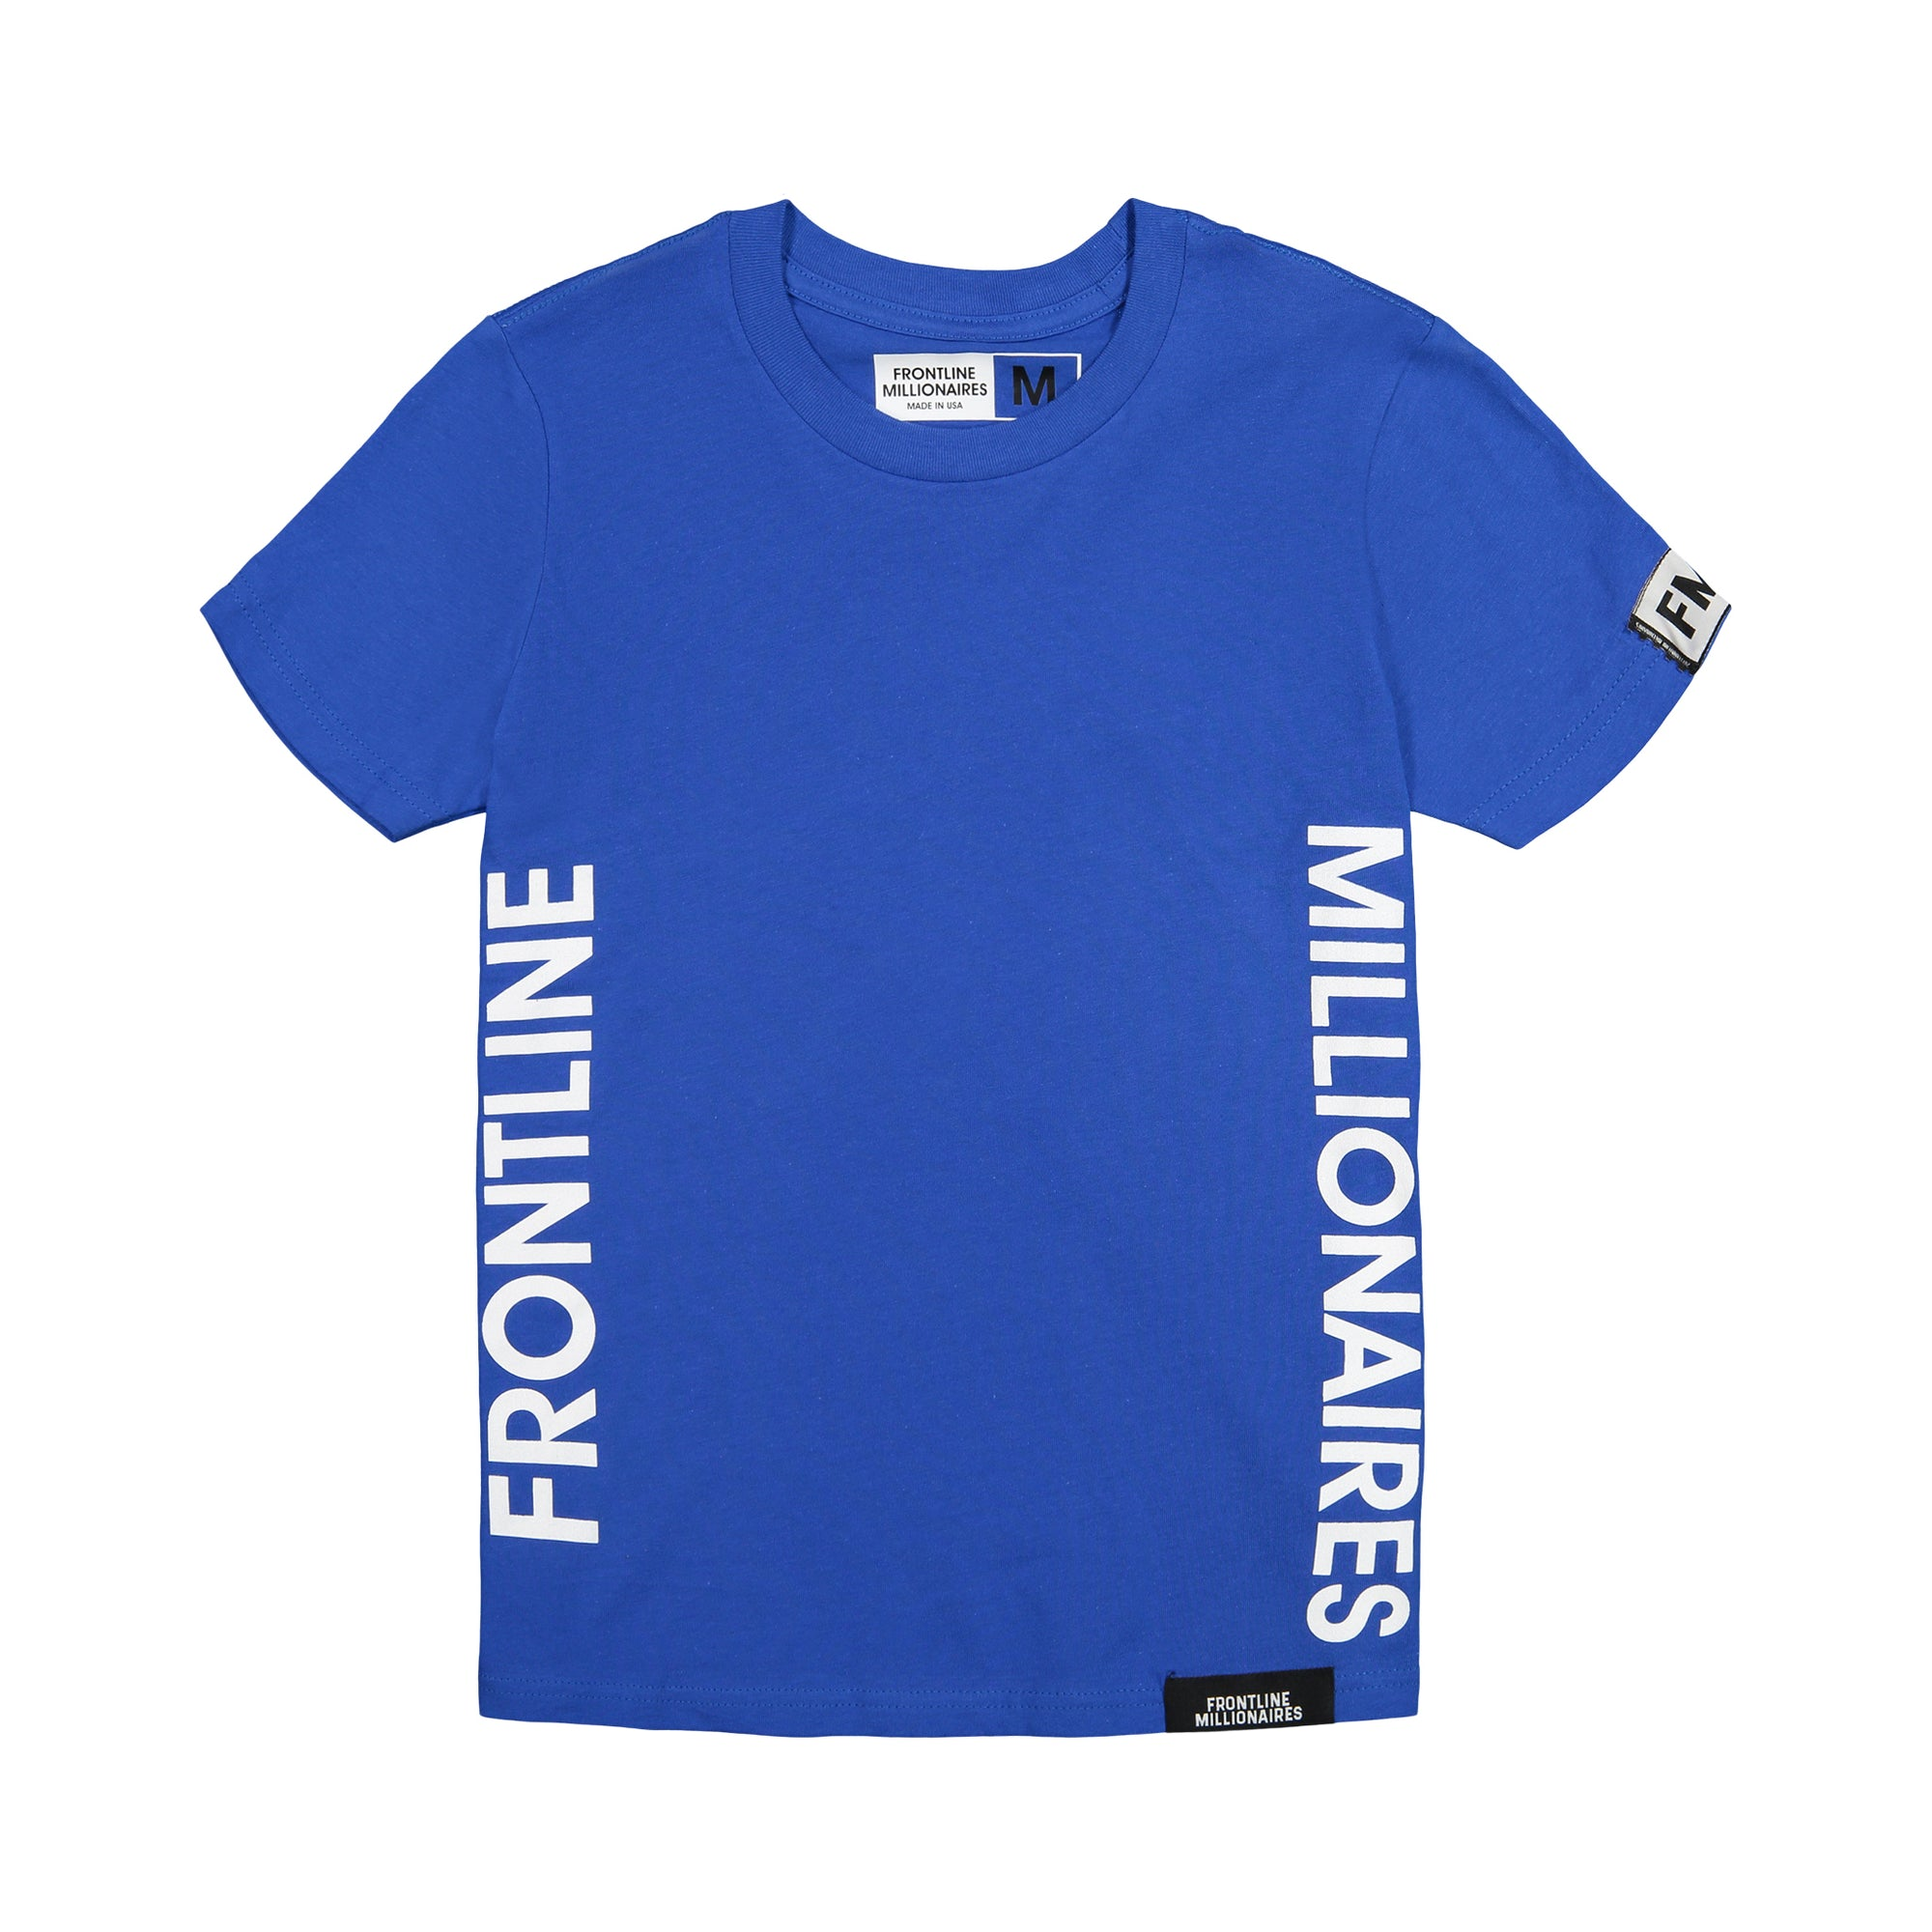 frontline millionaires sideline youth tee